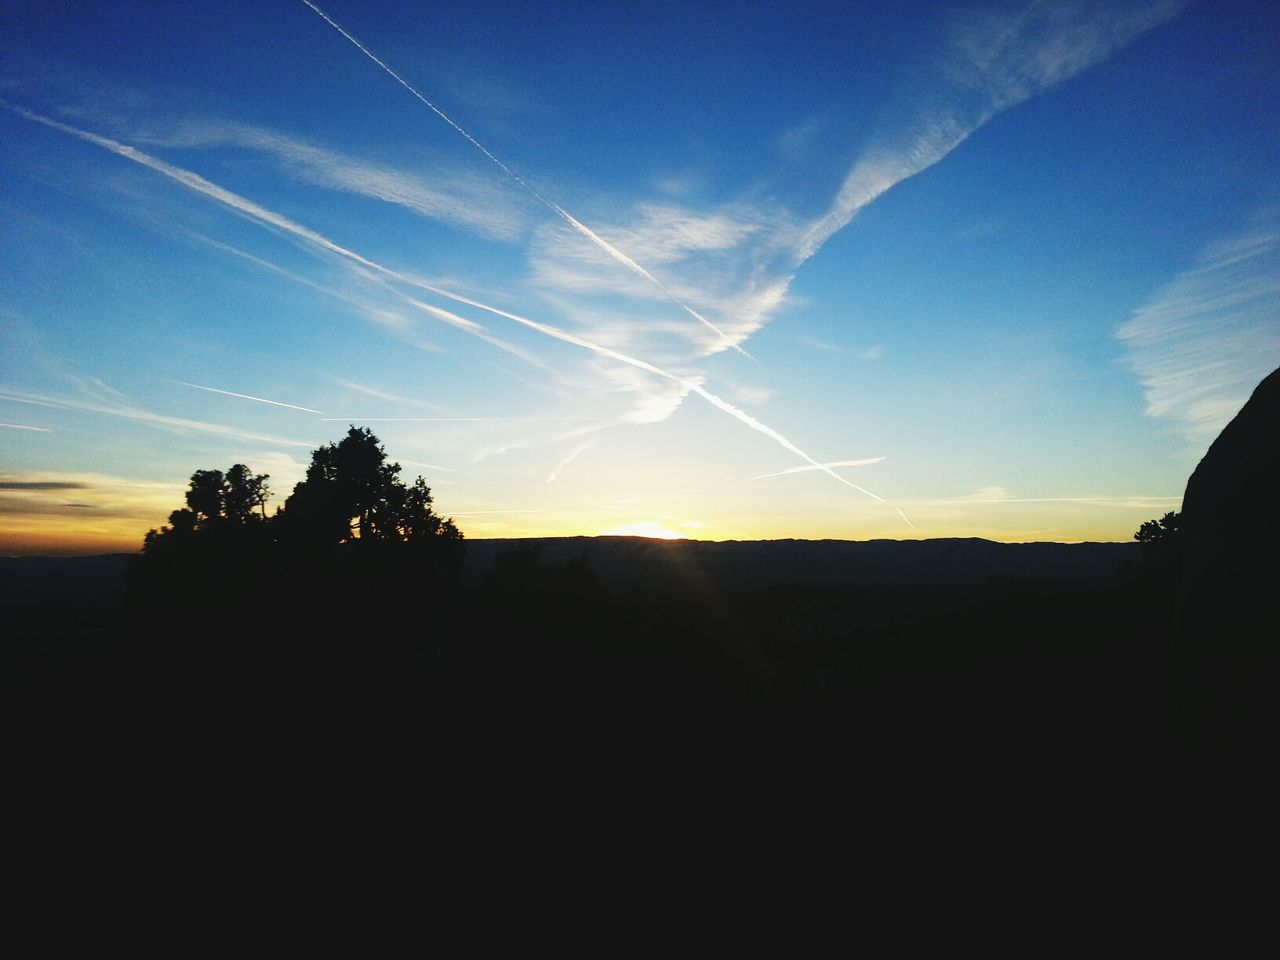 silhouette, sunset, landscape, sky, nature, no people, beauty in nature, tree, outdoors, vapor trail